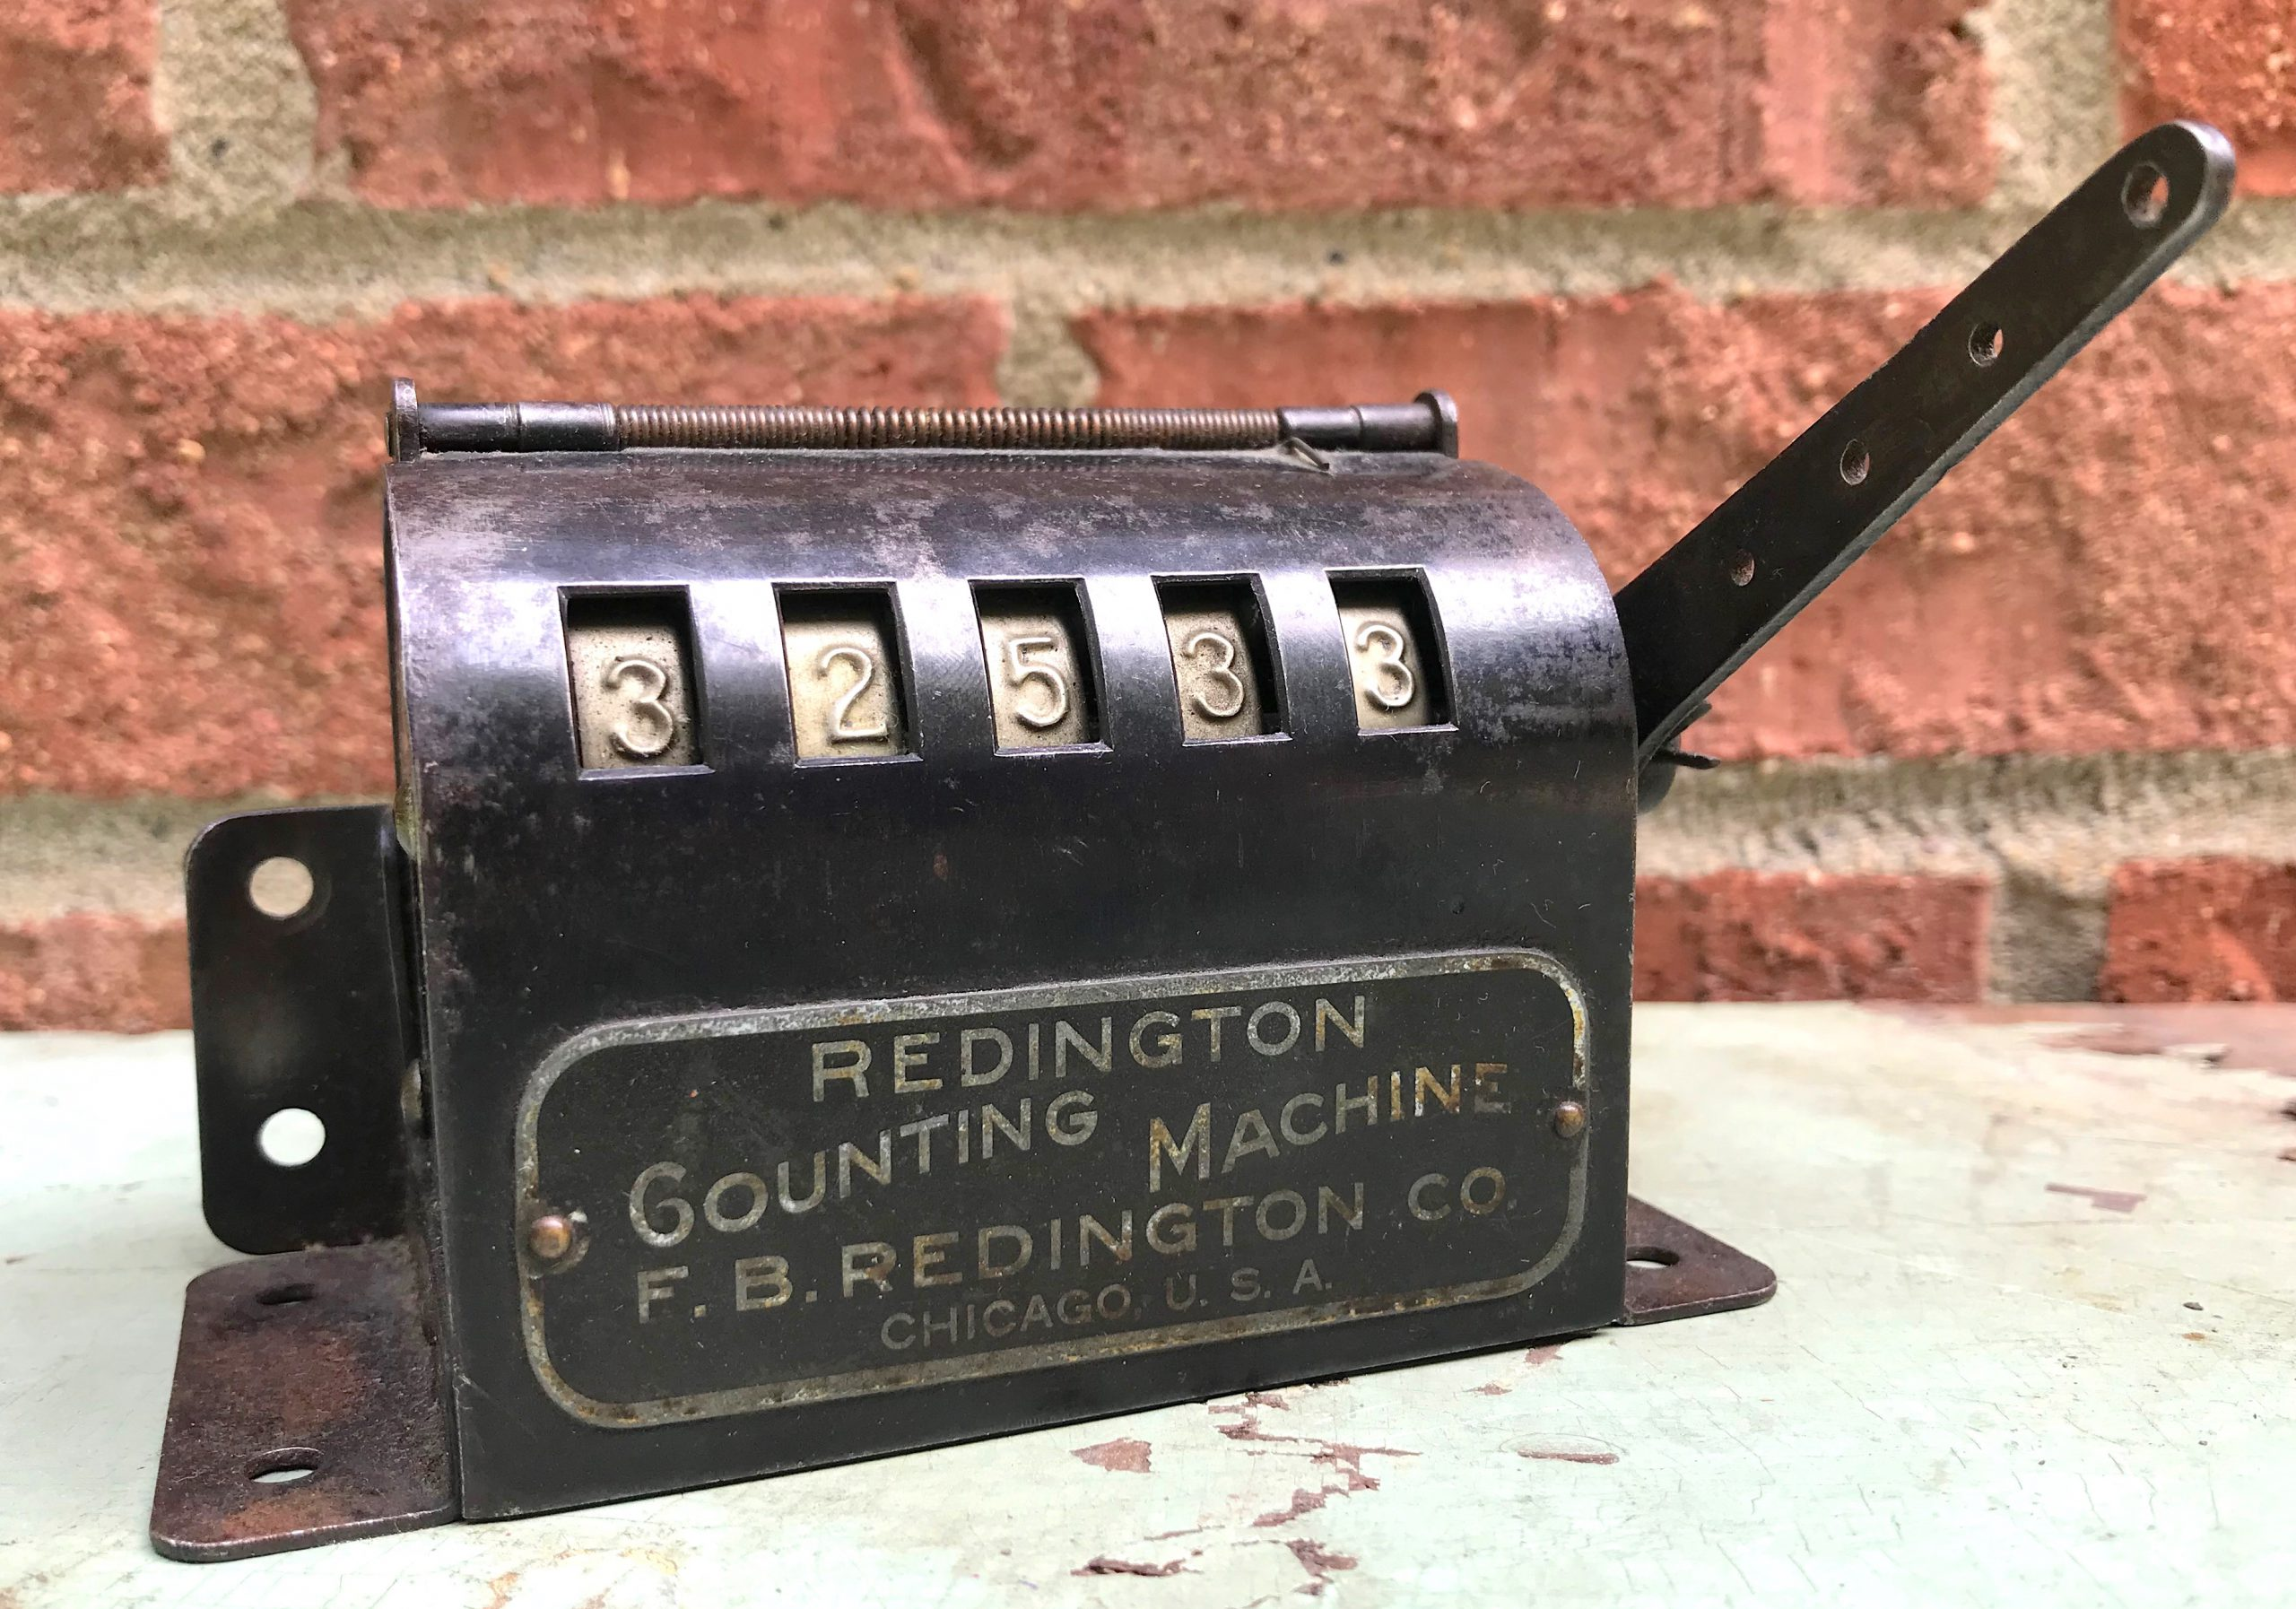 F. B. Redington Counting Machine History